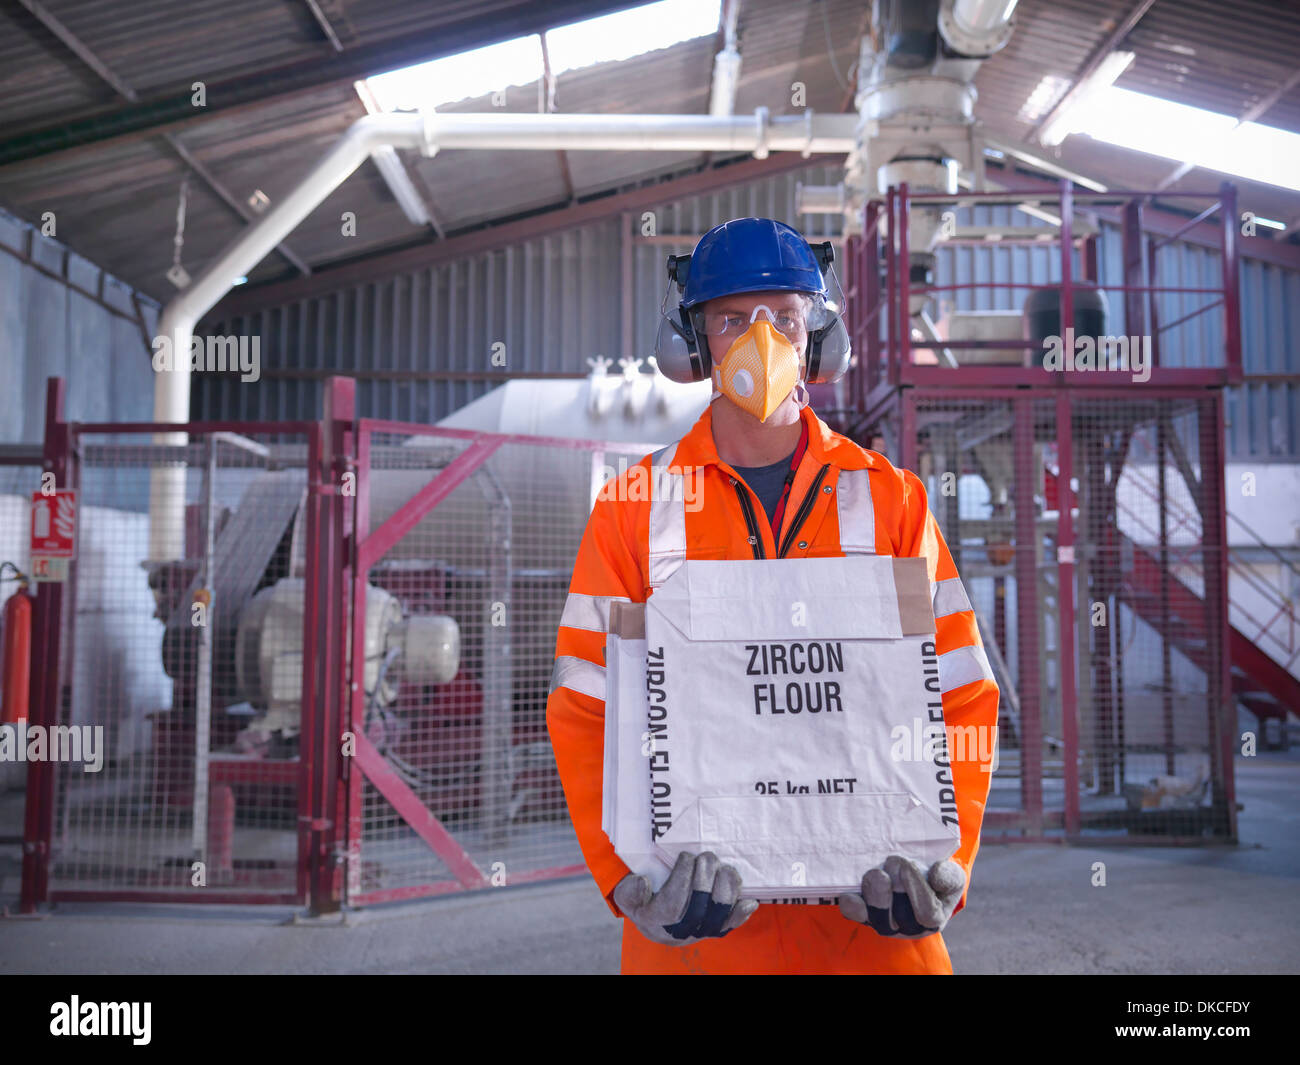 Worker in protective clothing holding zircon flour bag in mill - Stock Image